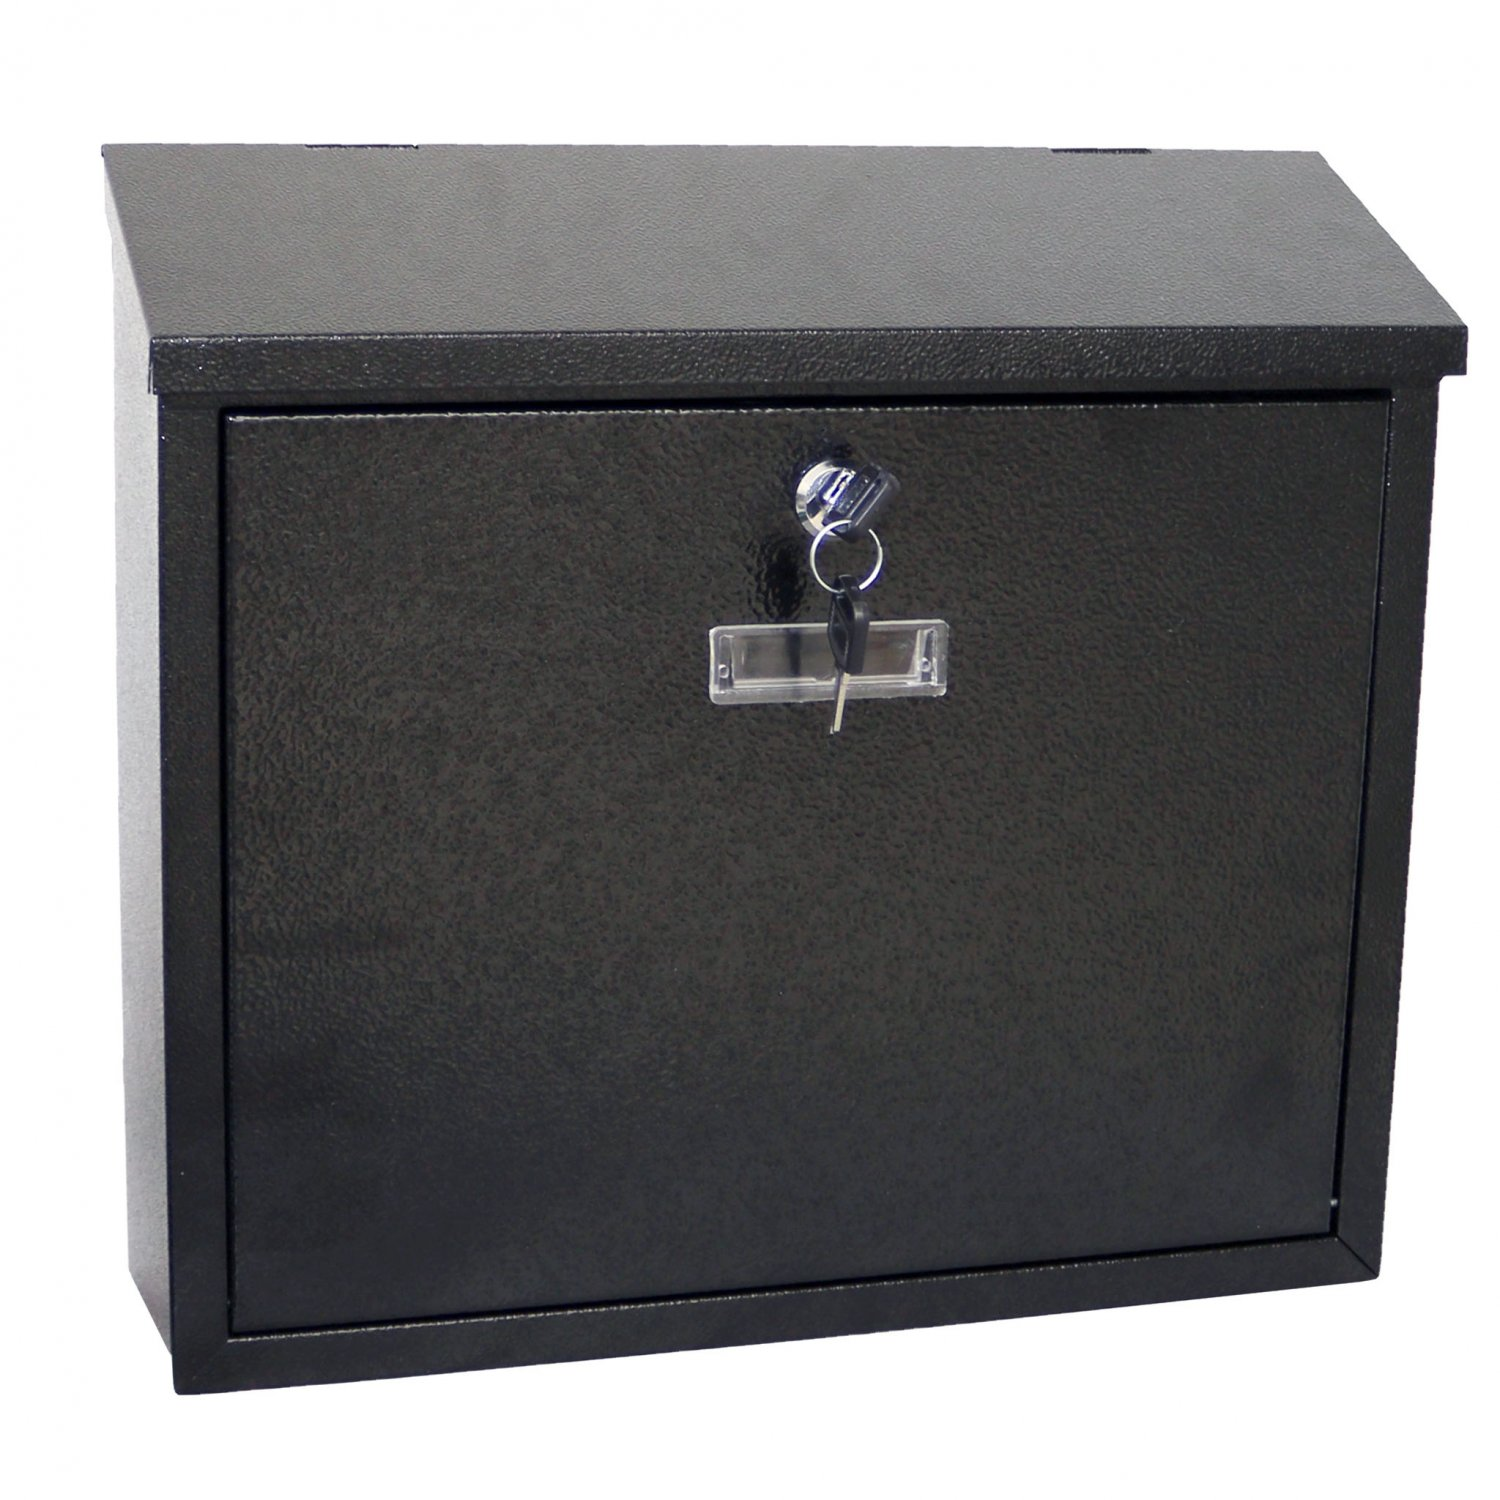 Black Wall Mounted Lockable Waterproof House Mailbox Postbox 18 99 Oypla Stocking The Very Best In Toys Electrical Furniture Homeware Garden Gifts And Much More